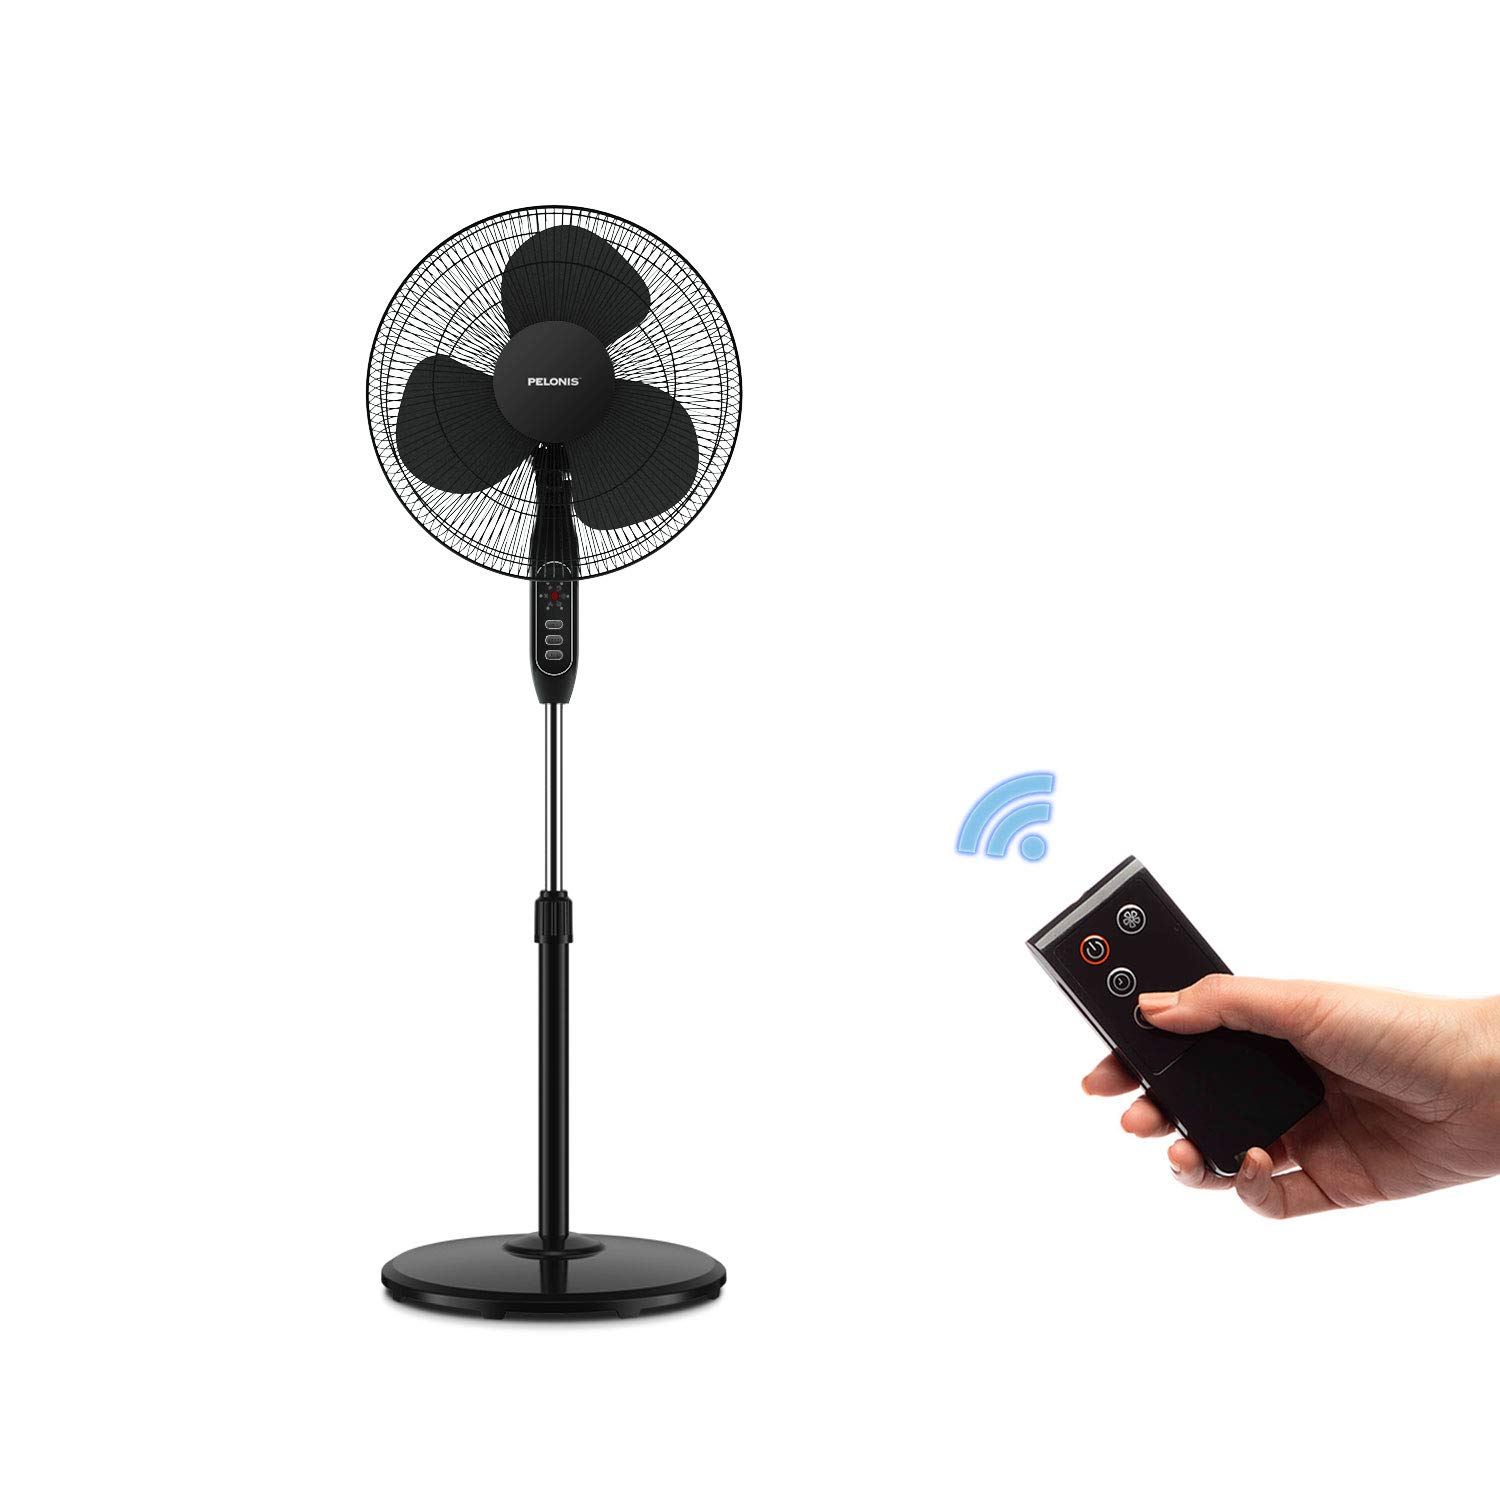 Pelonis 16''  3-Speed Oscillating Pedestal Fan with 7-Hour Timer, Remote Control and Adjustable in Height, FS40-16JRB,Black by PELONIS